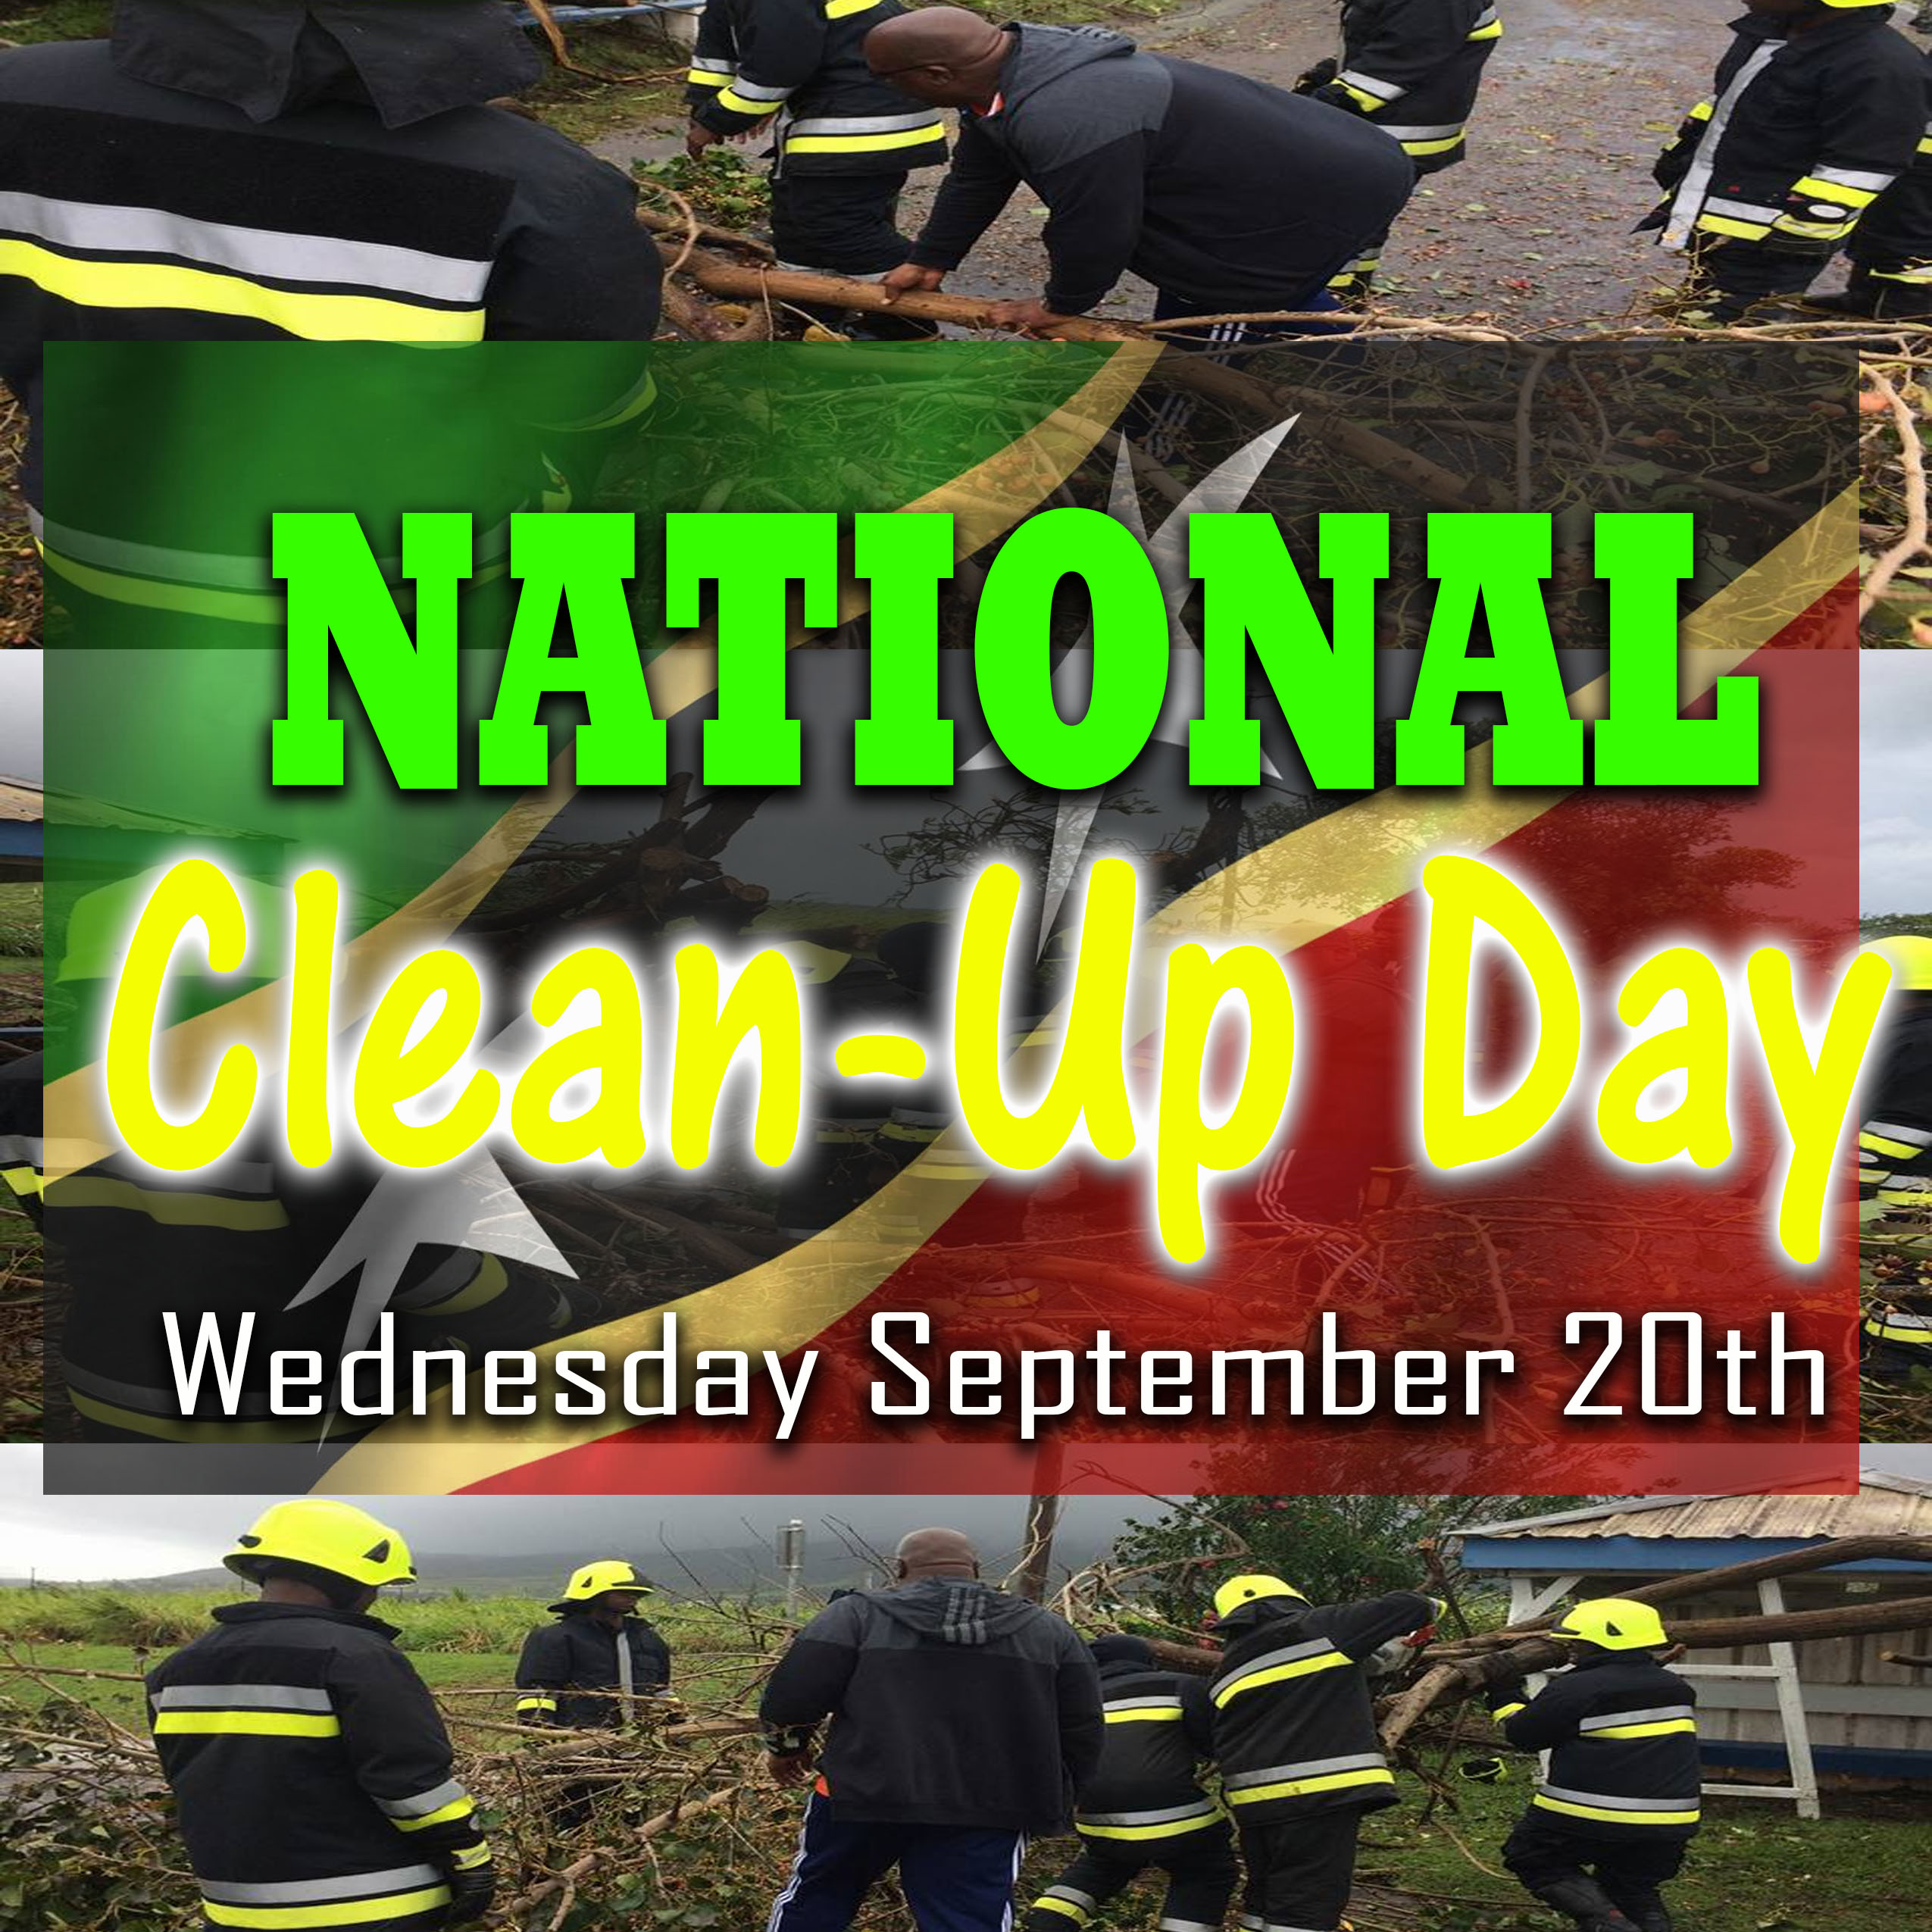 ST.KITTS-NEVIS GOVERNMENT DECLARES WEDNESDAY SEPT 20TH NATIONAL CLEAN-UP DAY – Times Caribbean